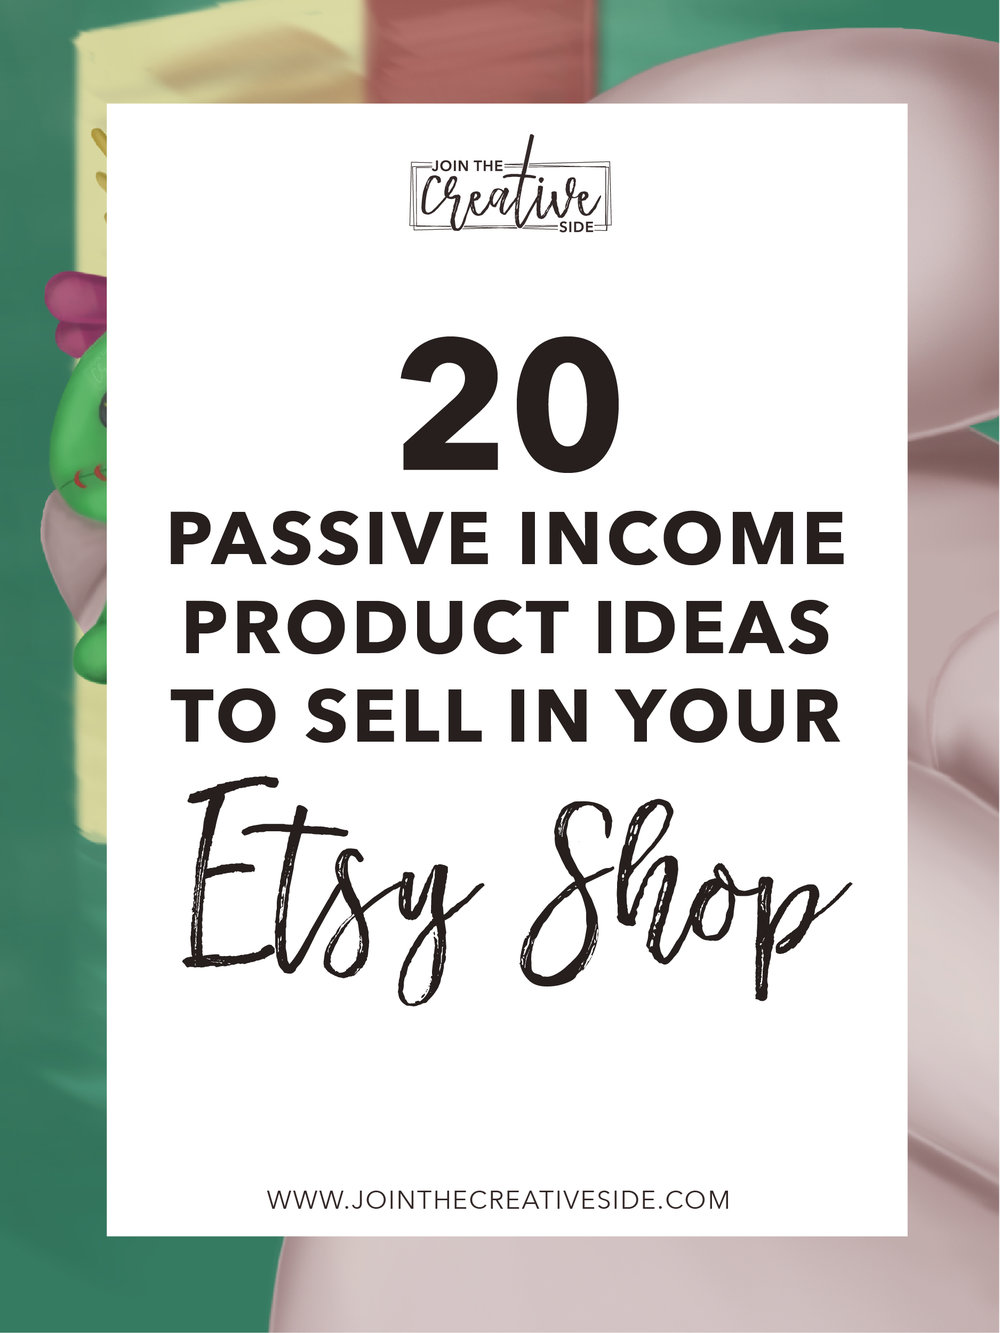 Are you looking for a way to boost your Etsy sales without working harder, but smarter? You should definitely try a passive income stream. Passive income allows you doing the work once, and you will keep getting paid. No clue where to start? I will give you 20 passive income ideas to use in your Etsy shop. #etsy #makemoney #etsymakemoney #passiveincome #makemoneyonline